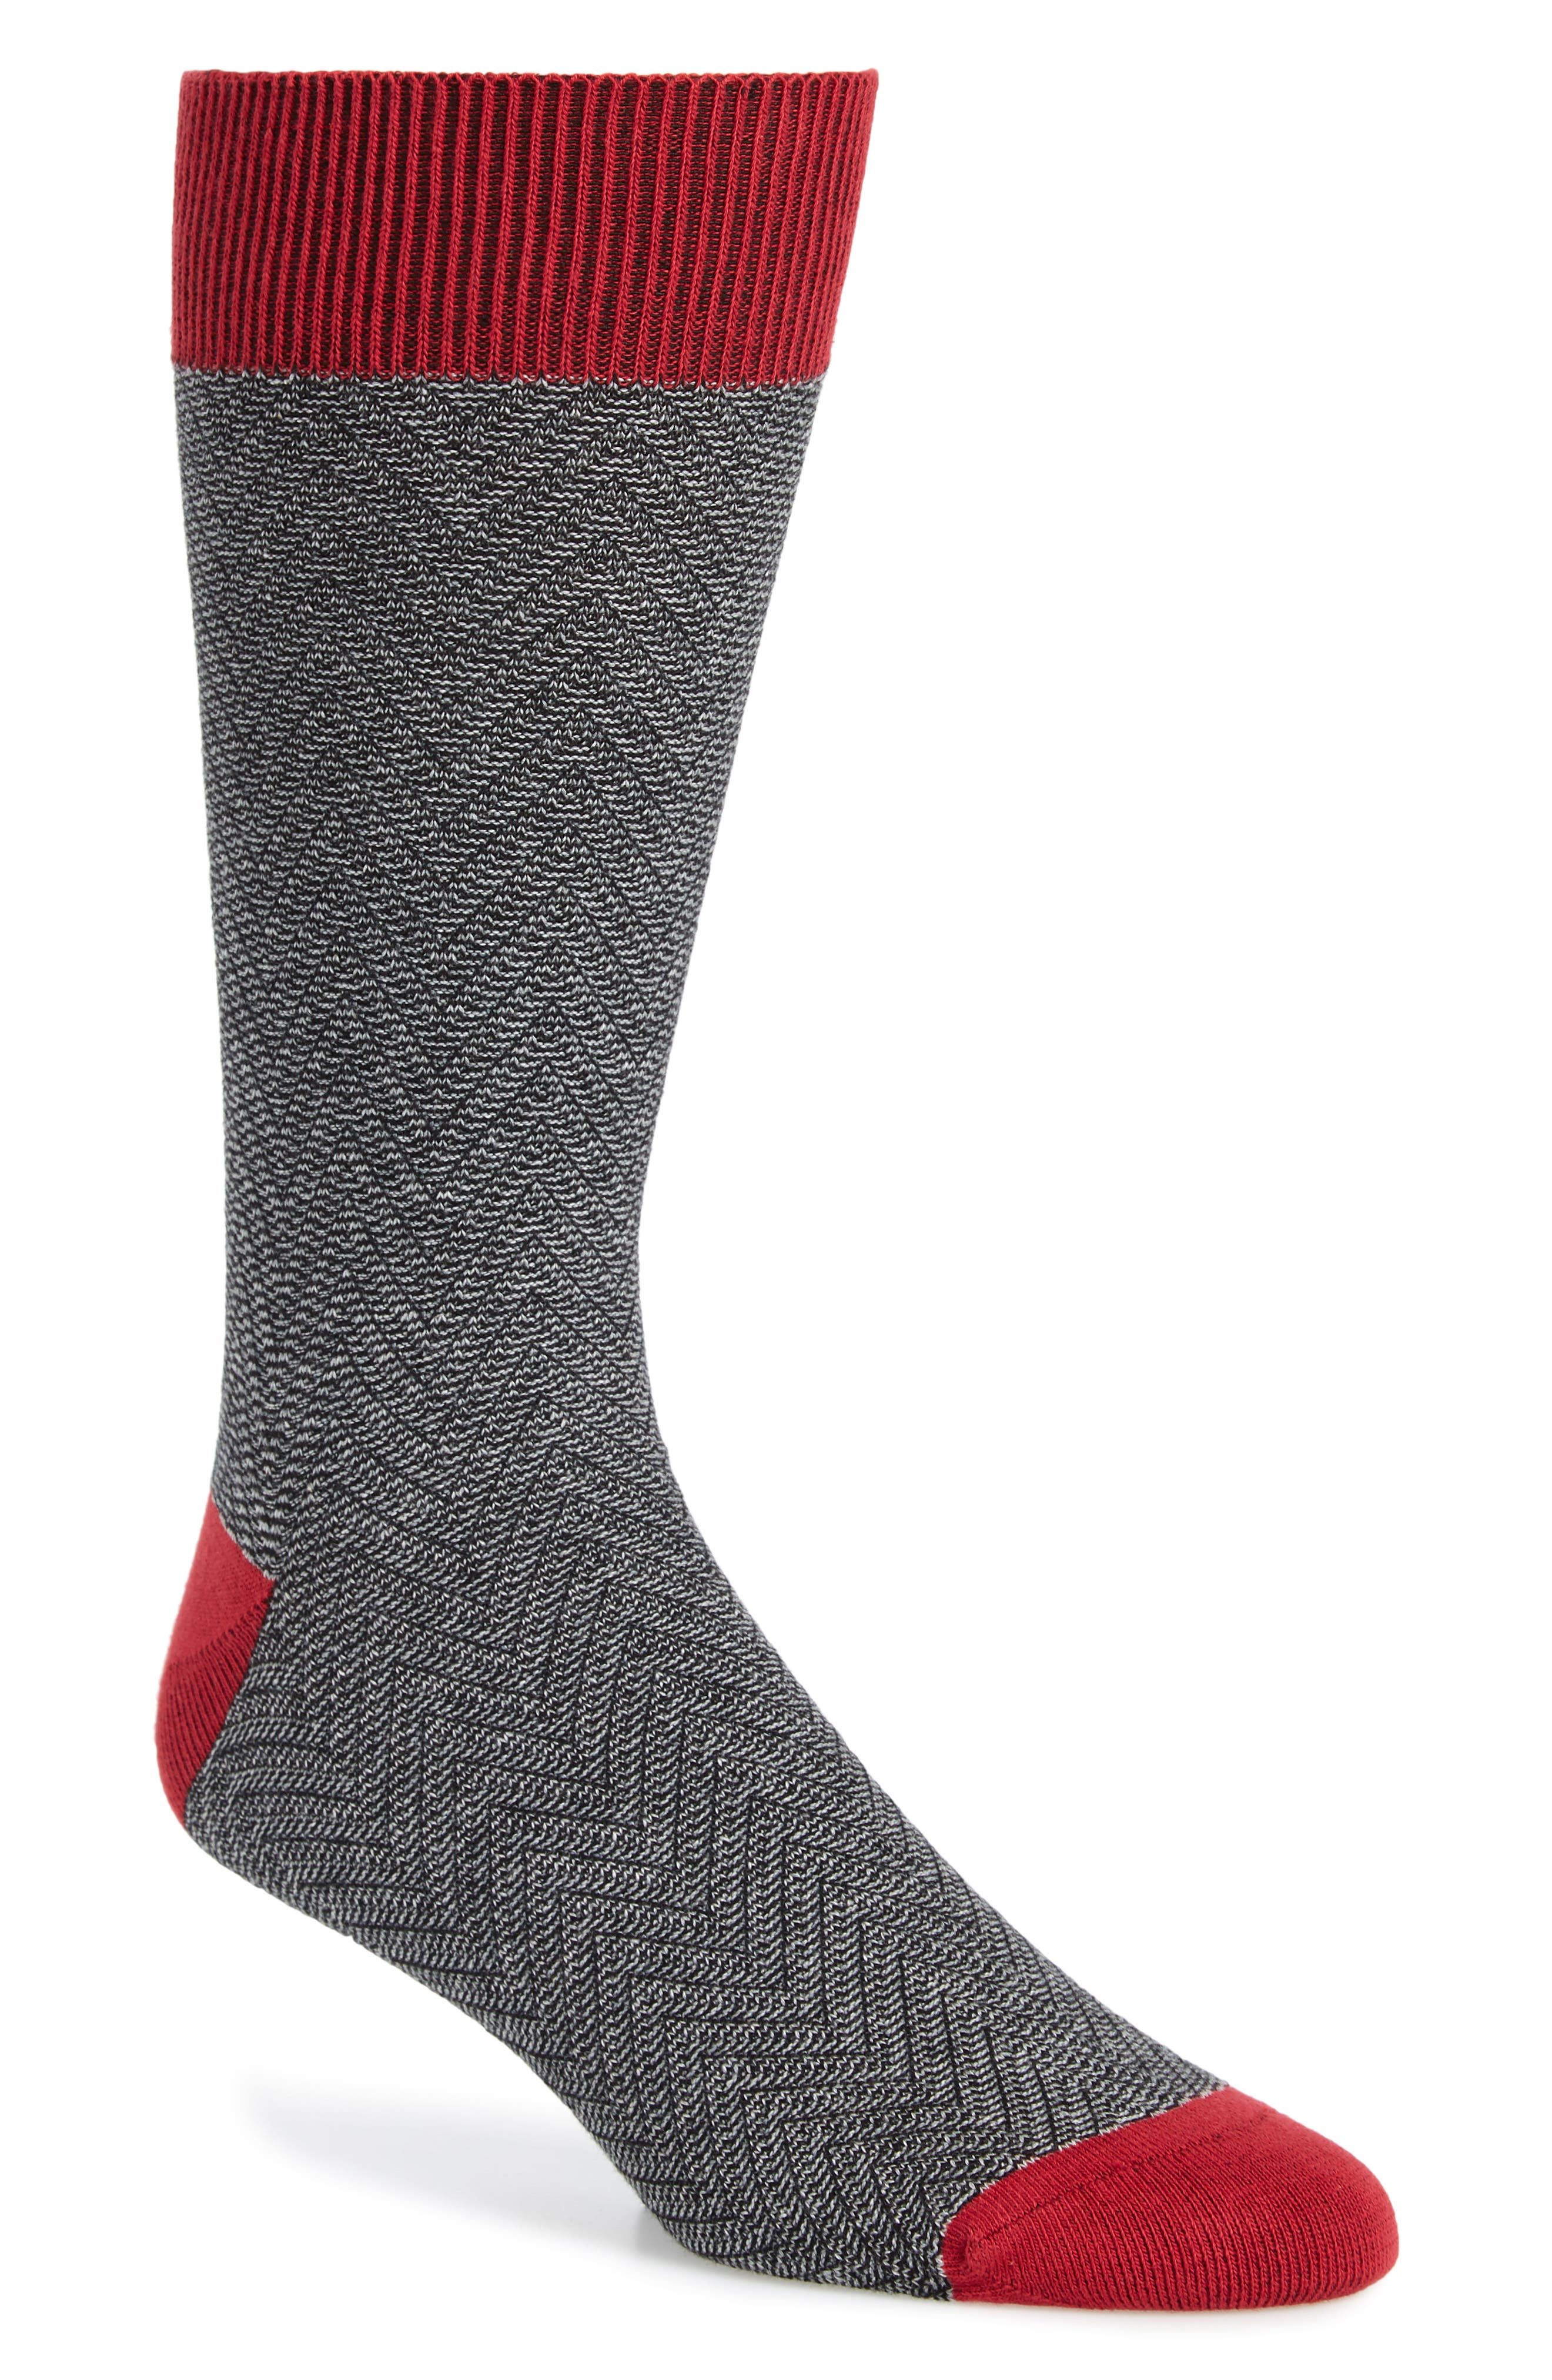 Doni Herringbone Socks,                         Main,                         color, GREY MARLED